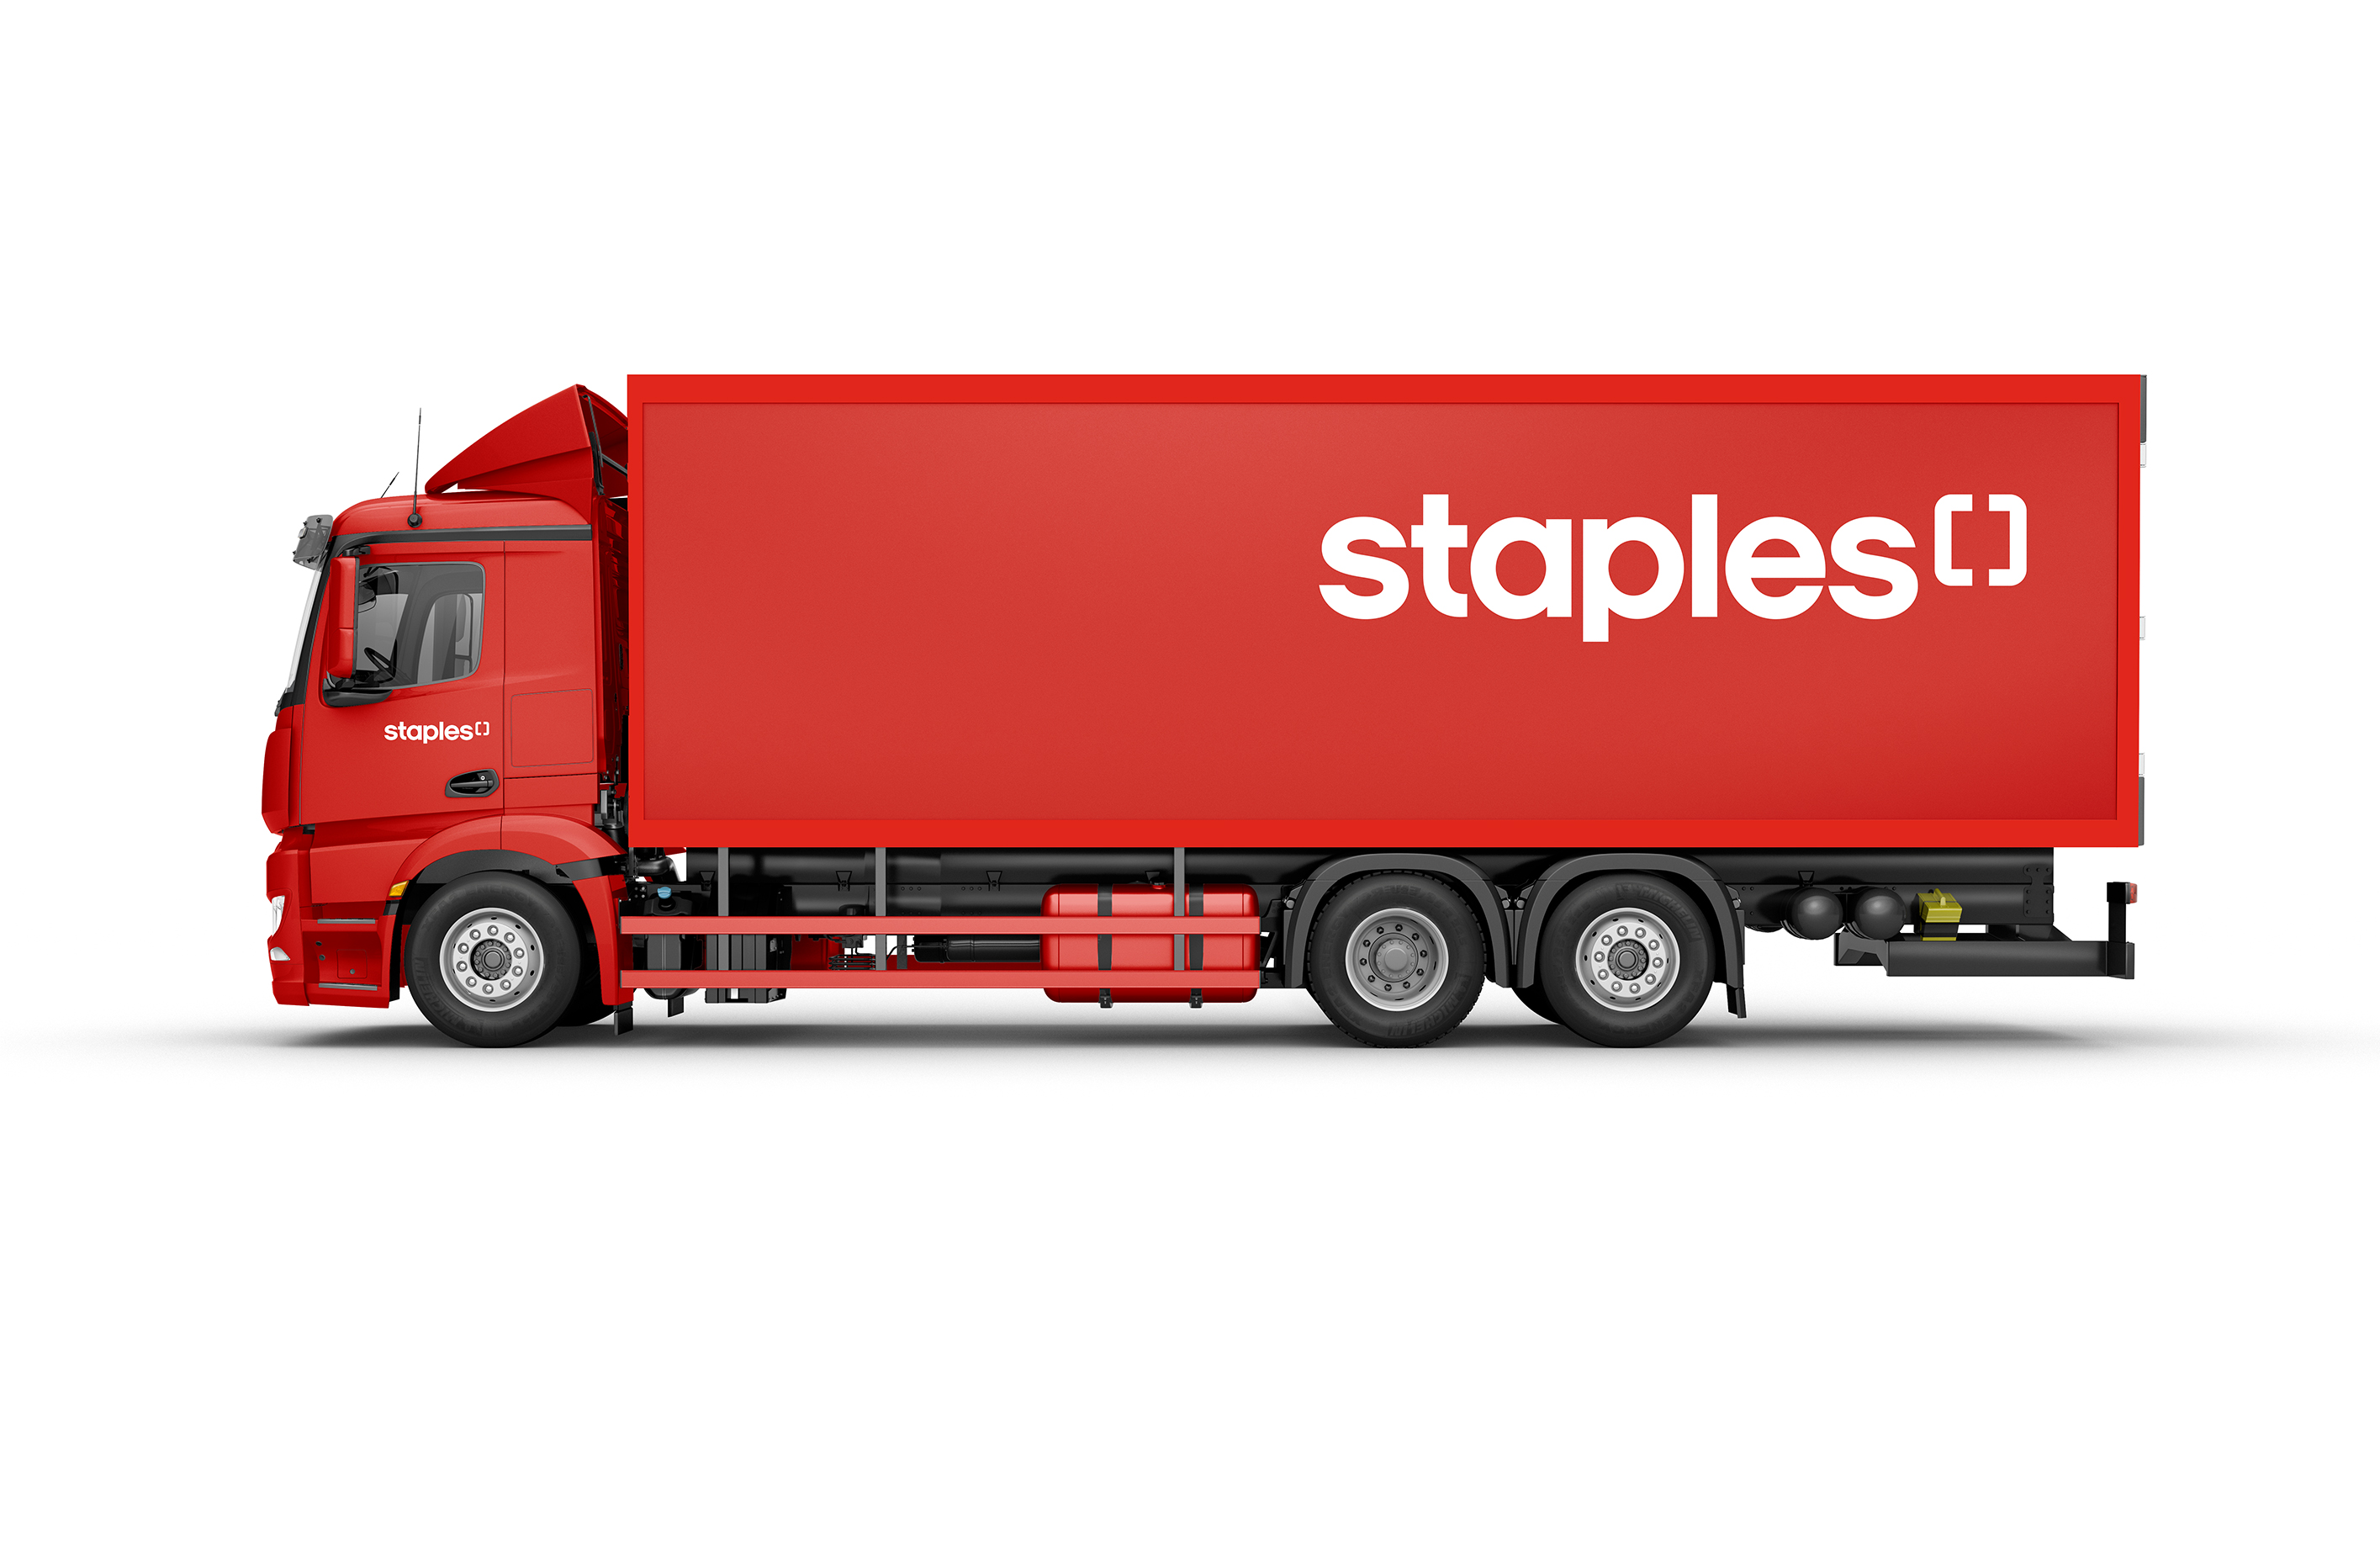 Staples-truck-side